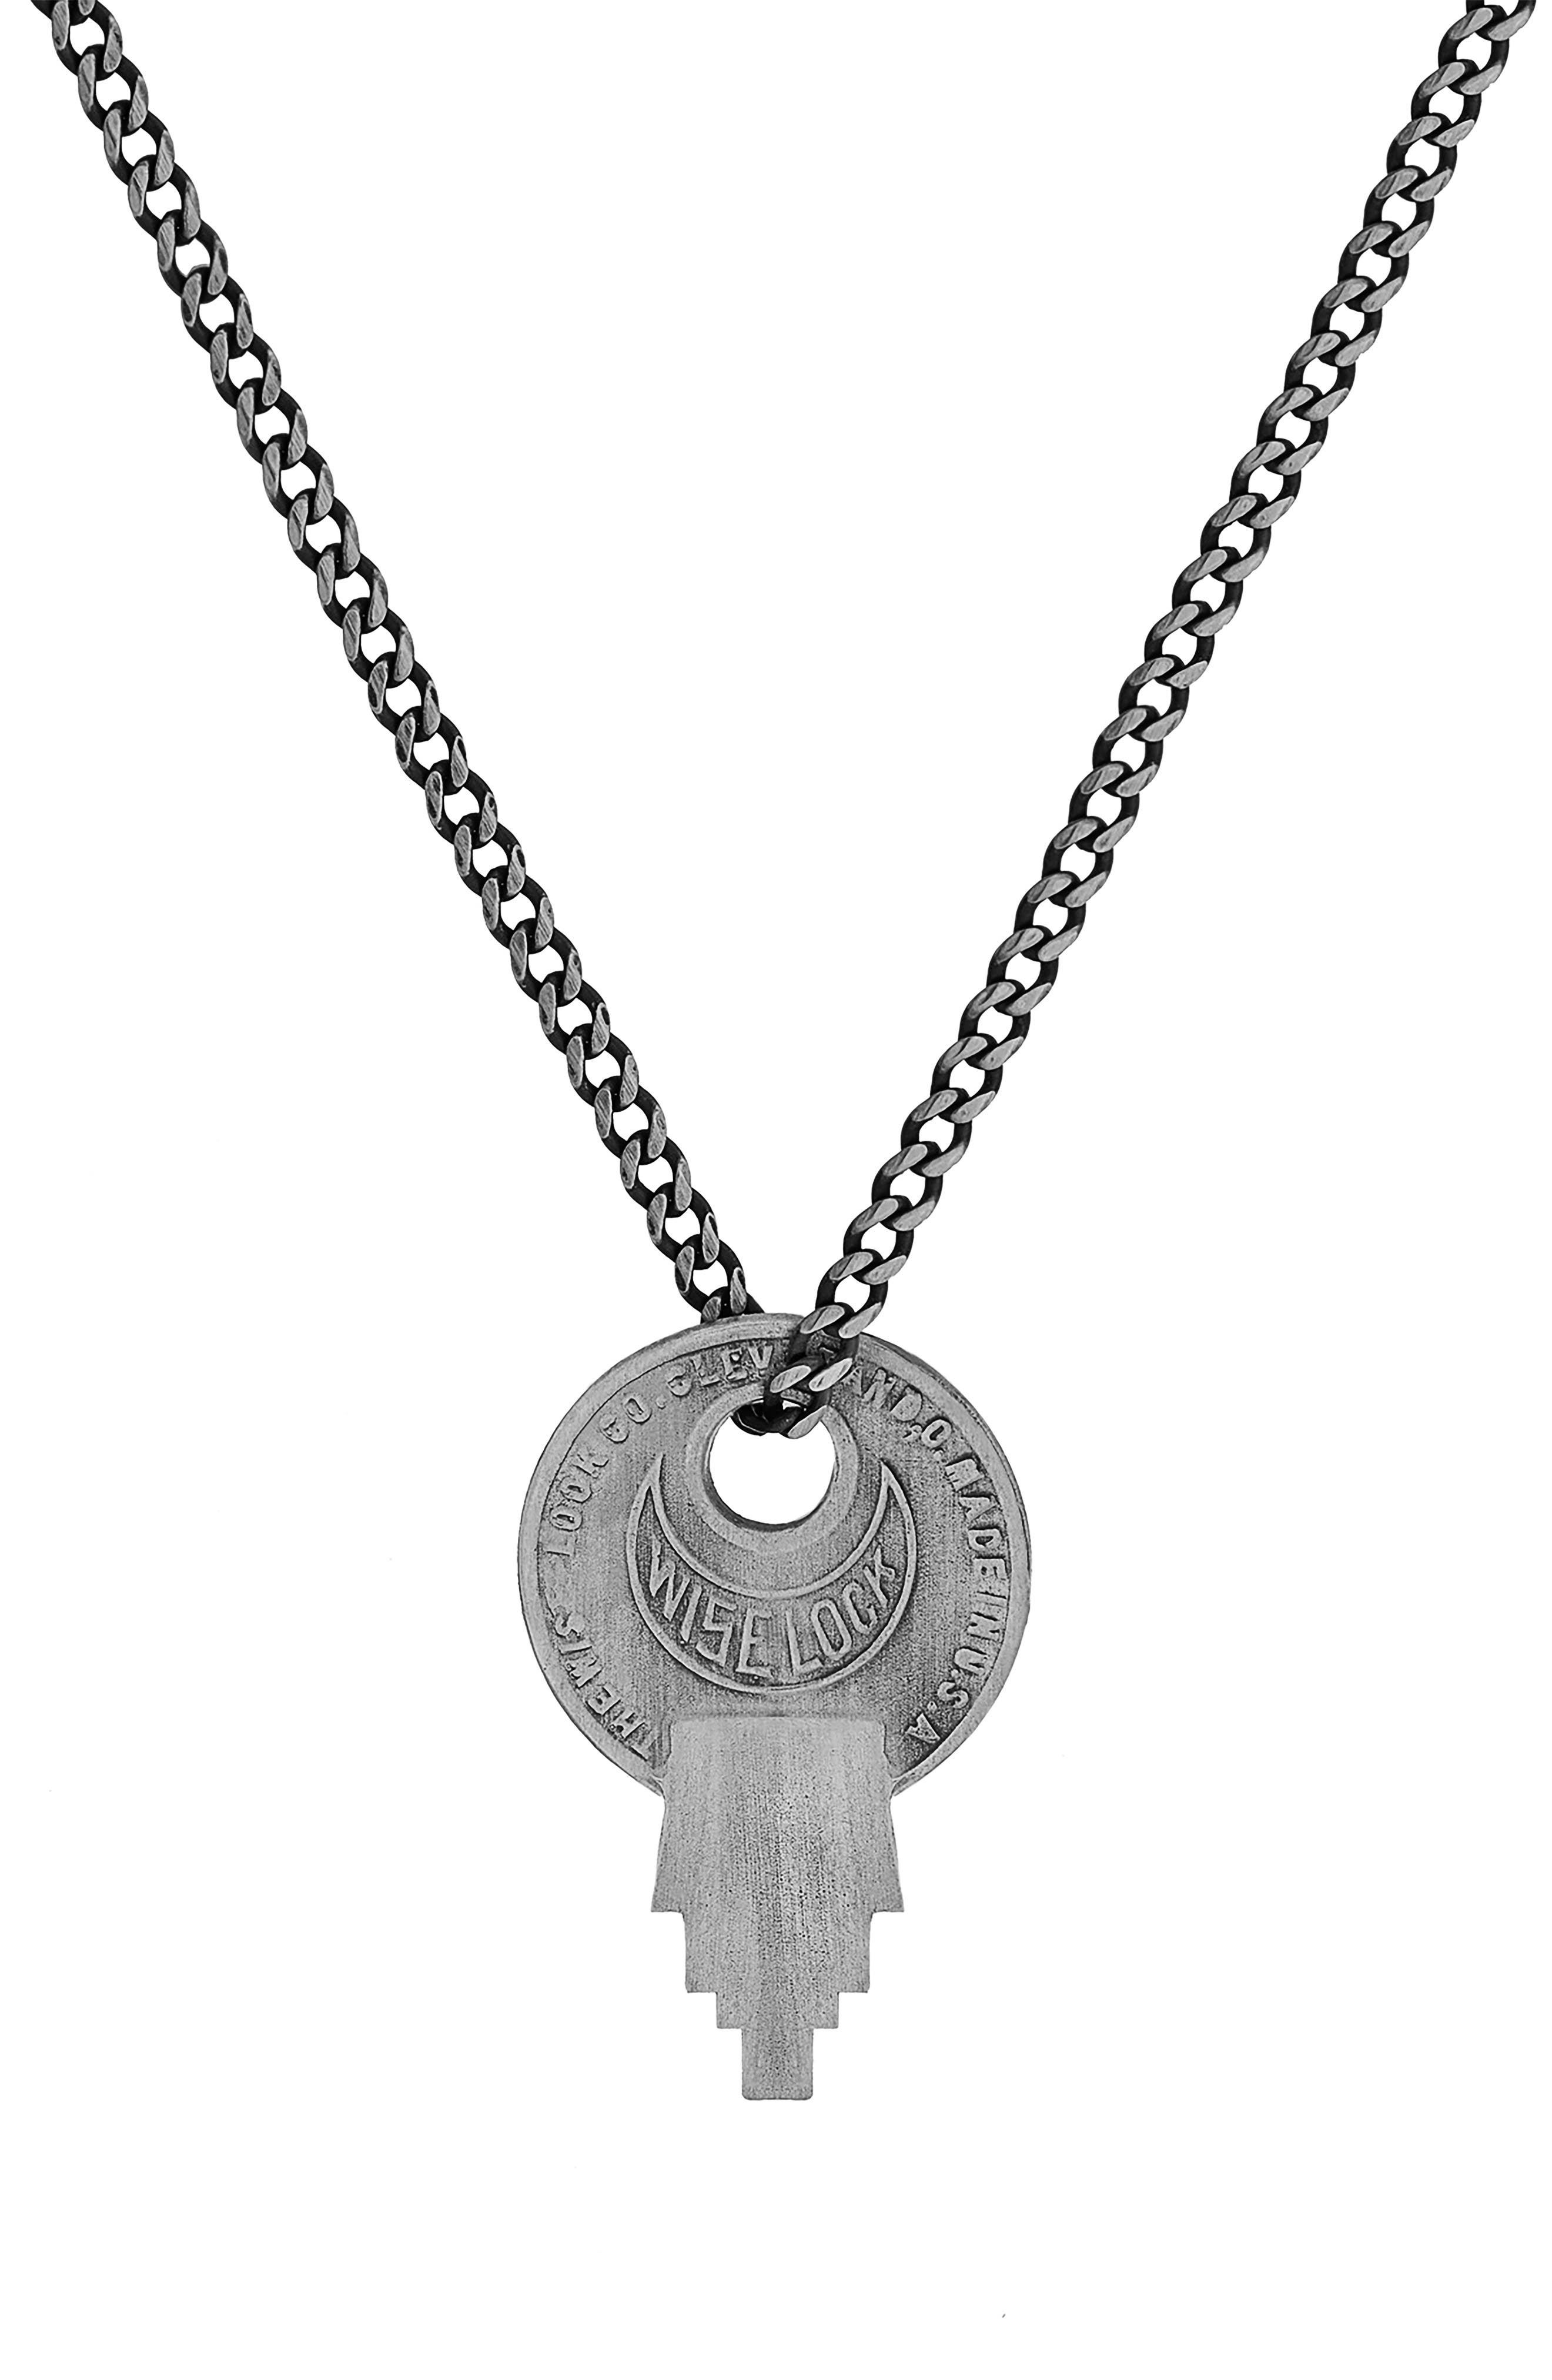 MIANSAI, Wise Lock Sterling Silver Pendant Necklace, Main thumbnail 1, color, BRUSHED SILVER